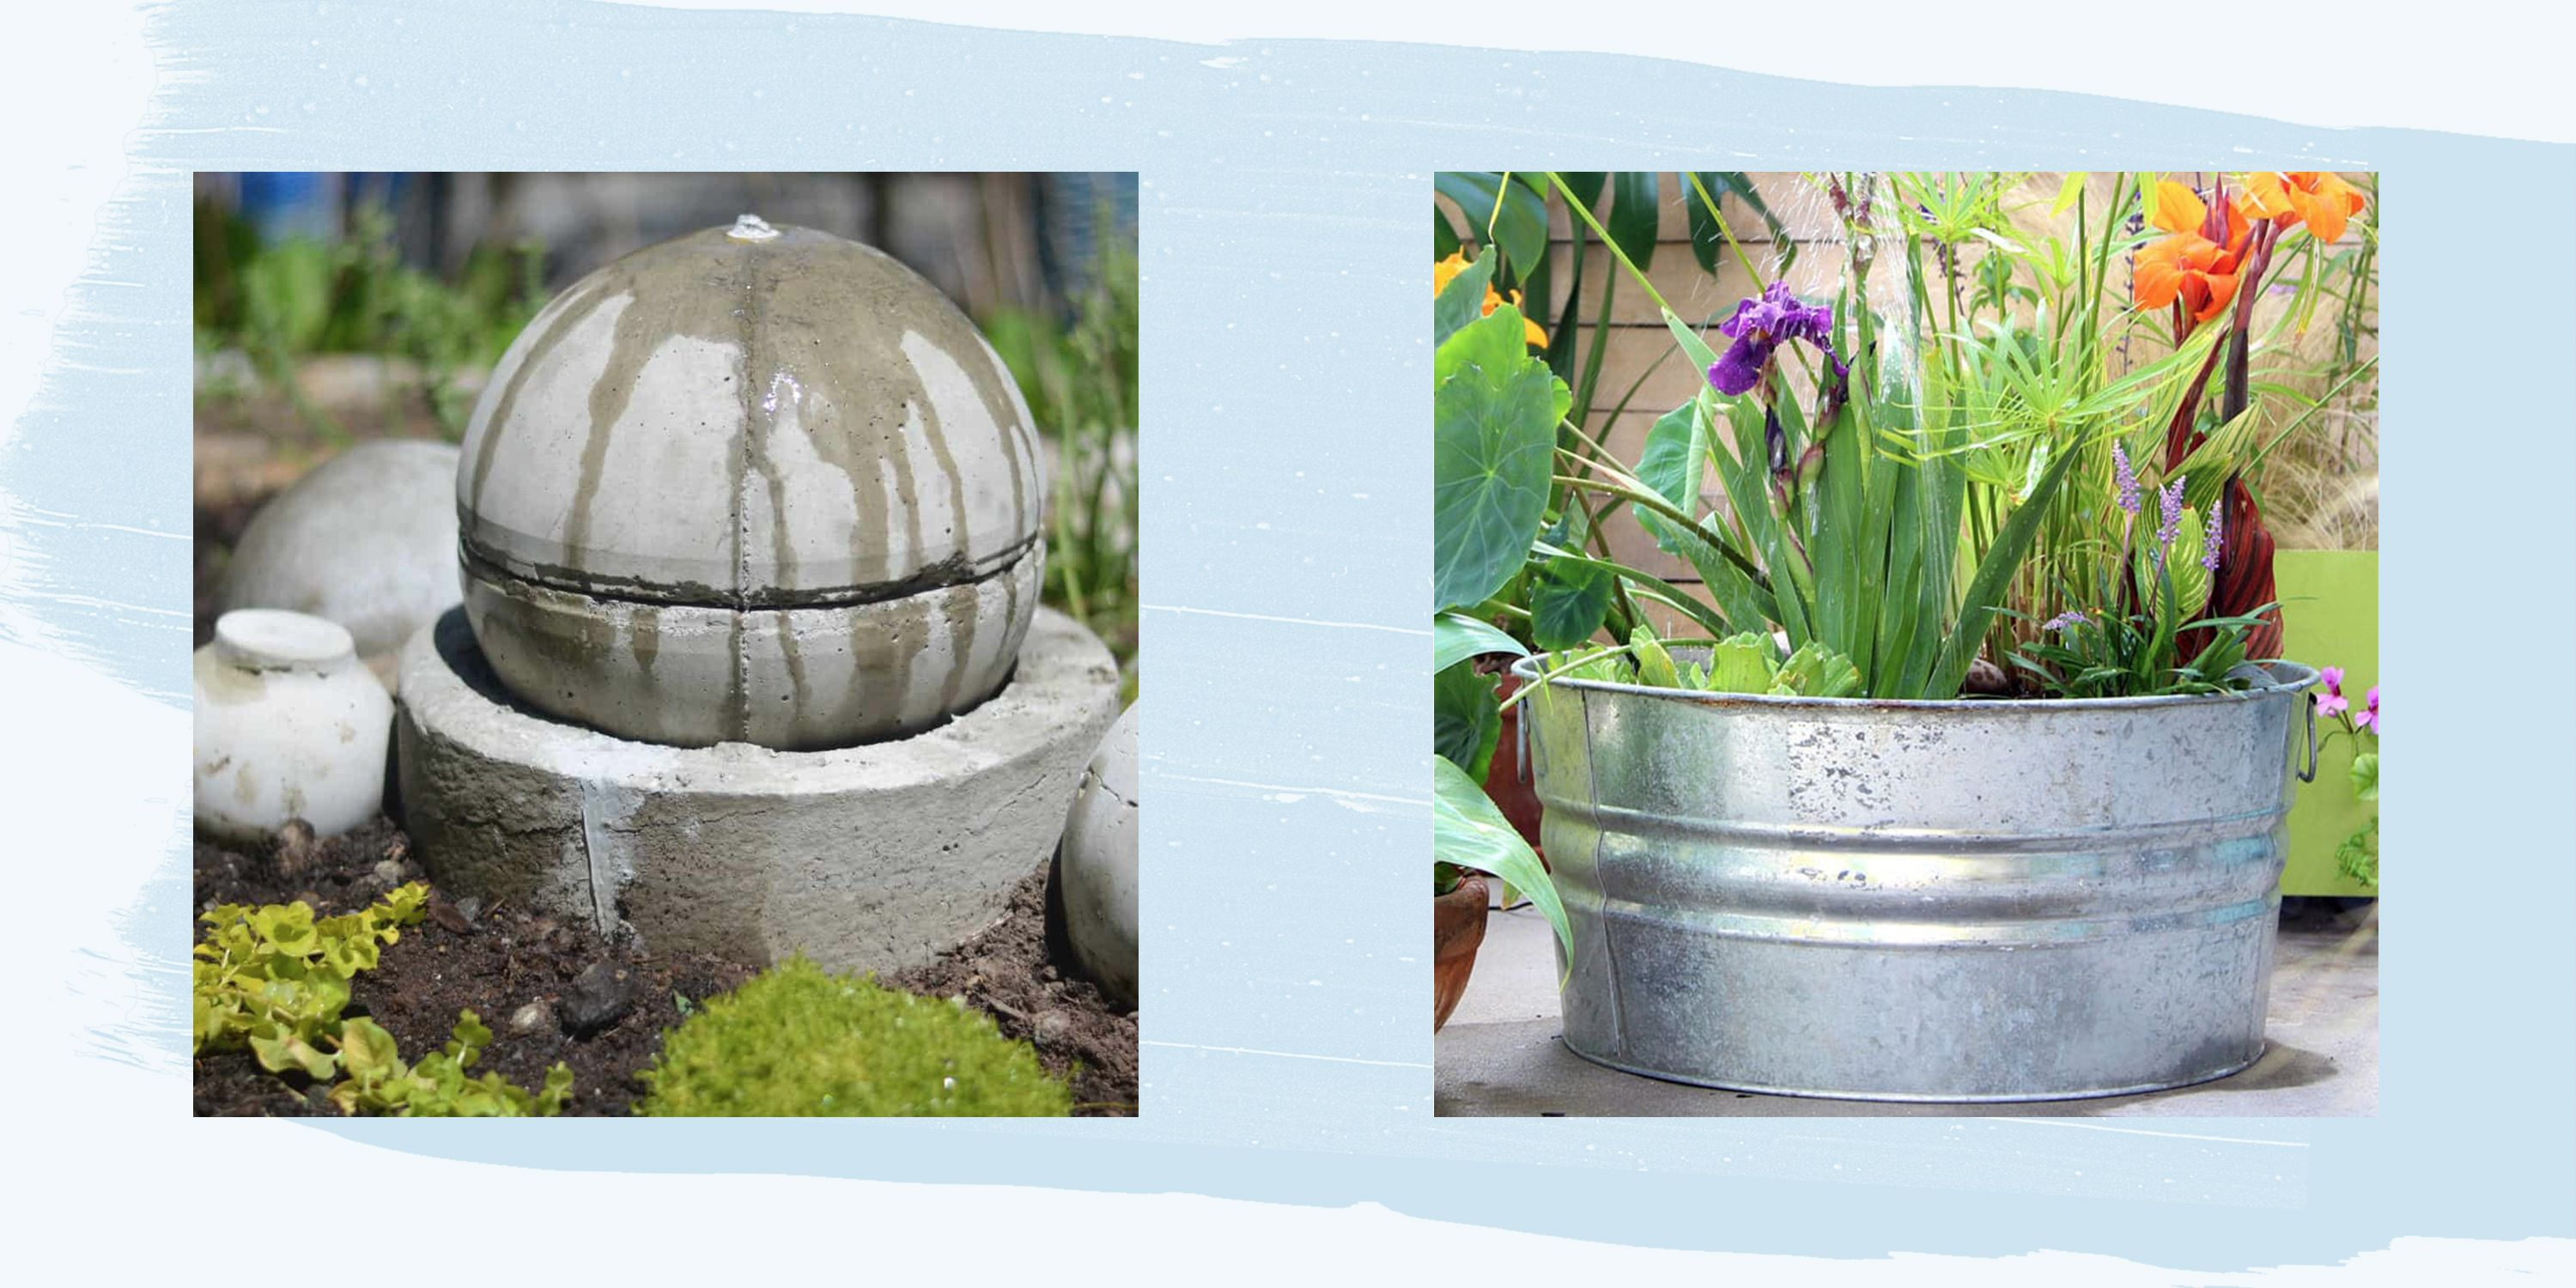 diy water fountains